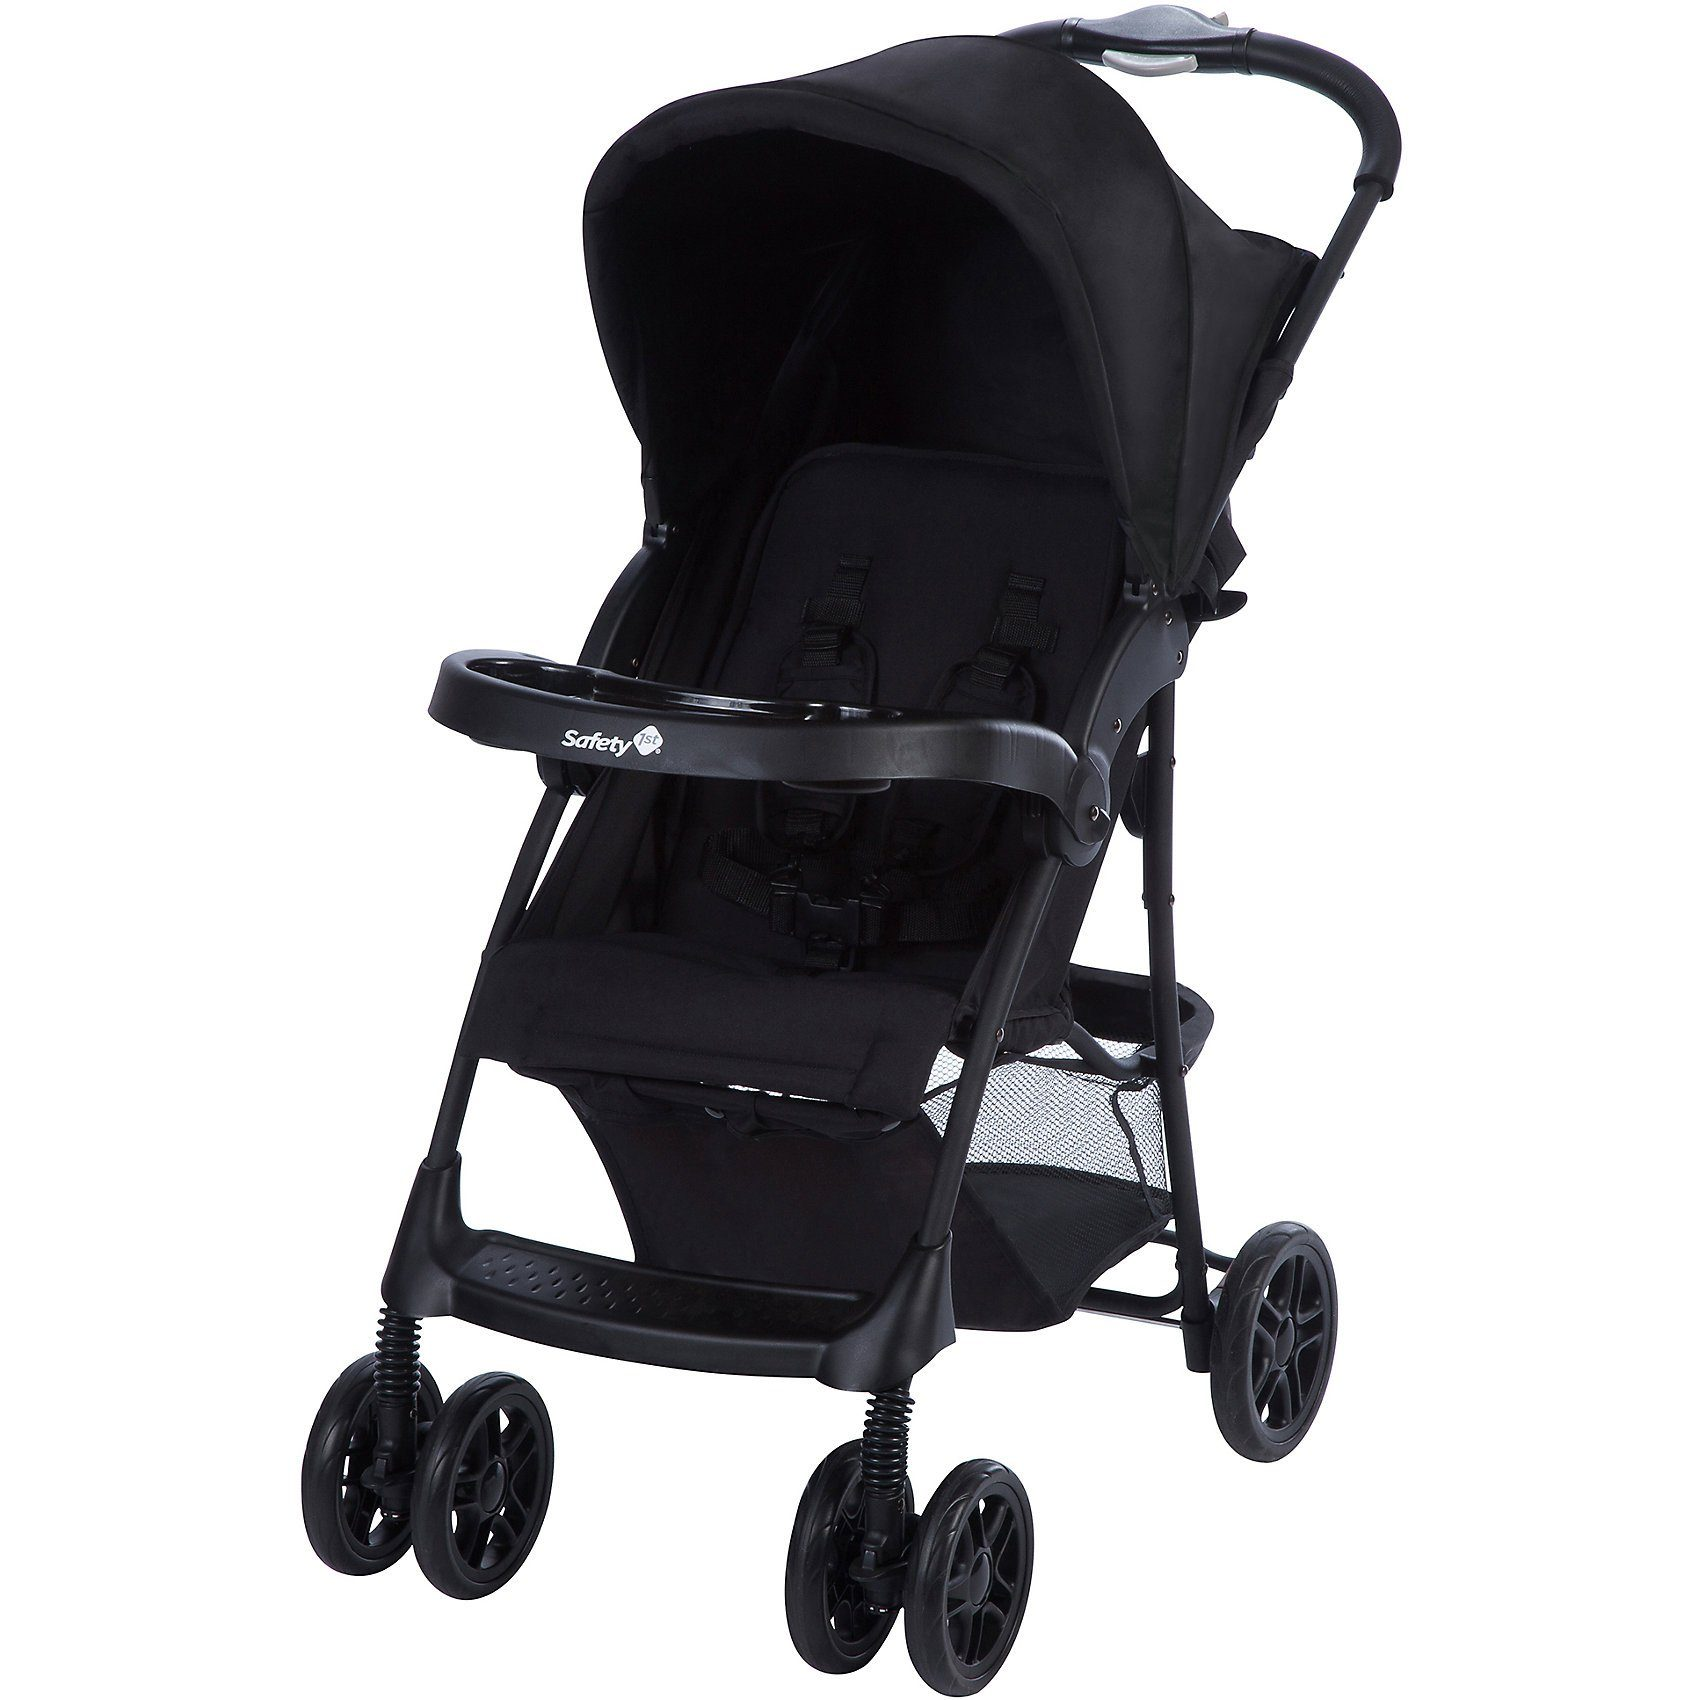 Safety 1st Buggy Taly, Full Black, 2018